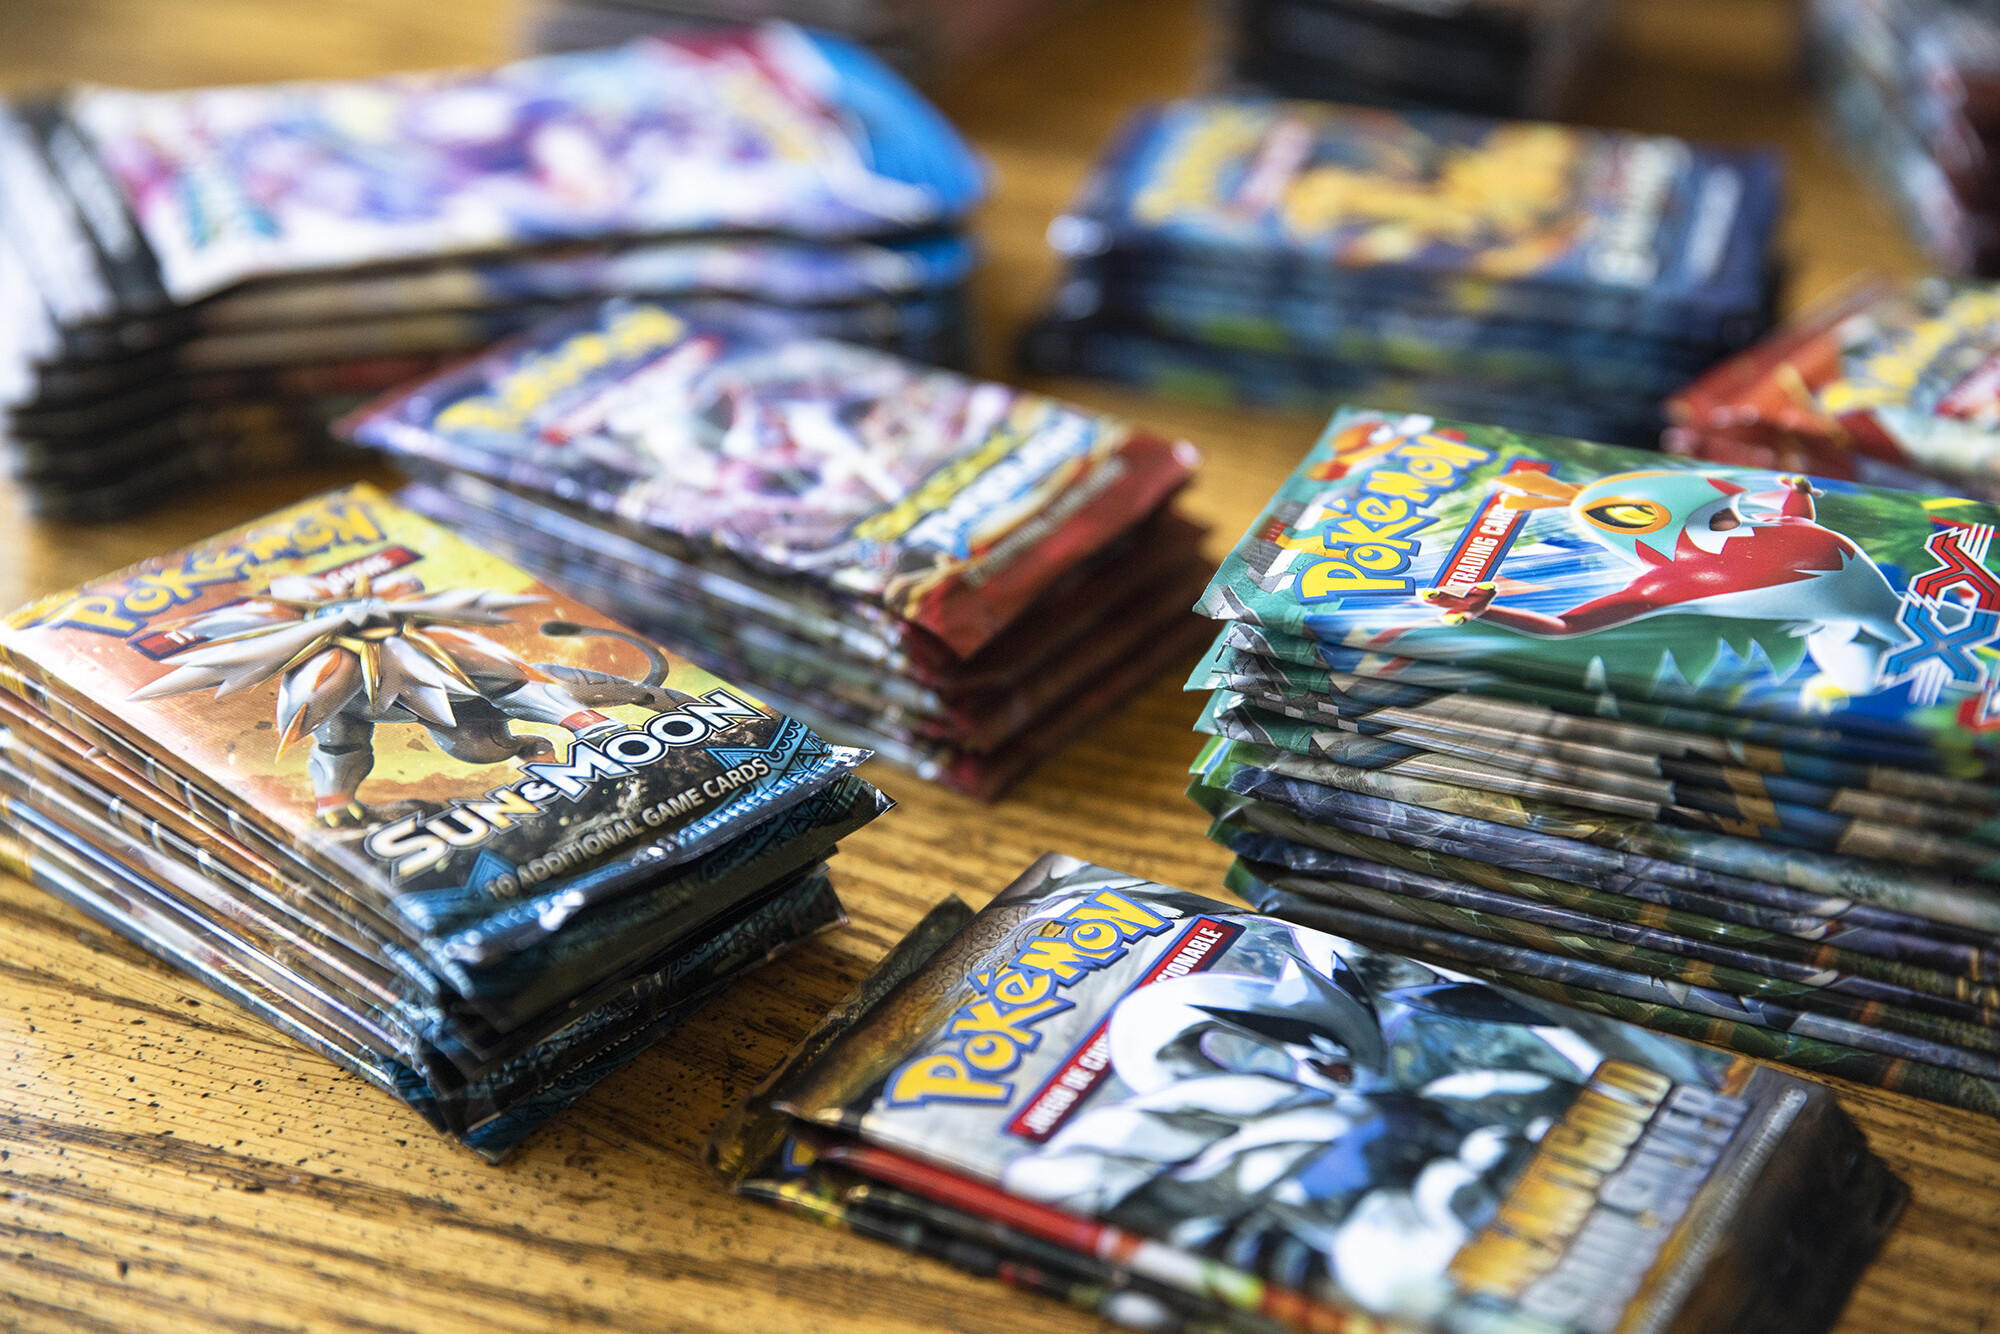 EBay looks to cash in on trading cards boom